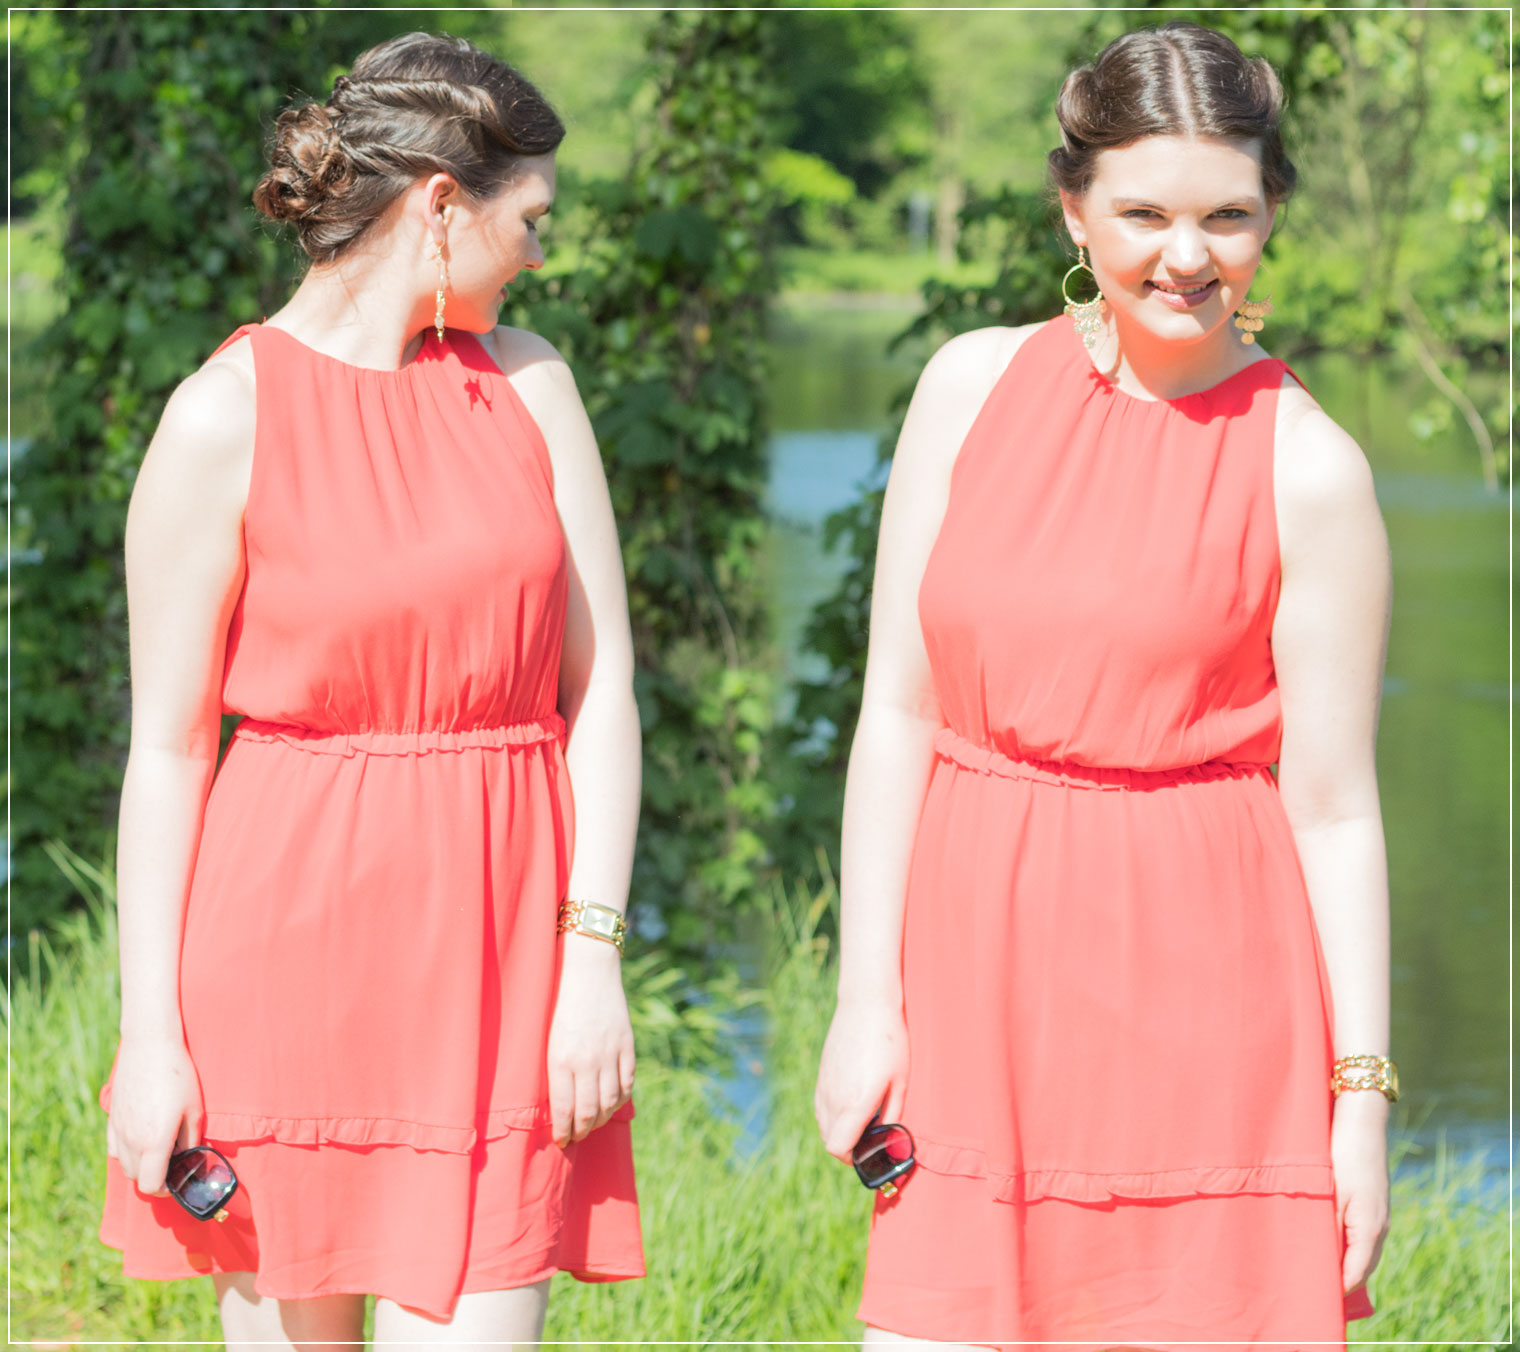 Sommerkleid, rotes Kleid, Summerdress, Sommer-Feeling